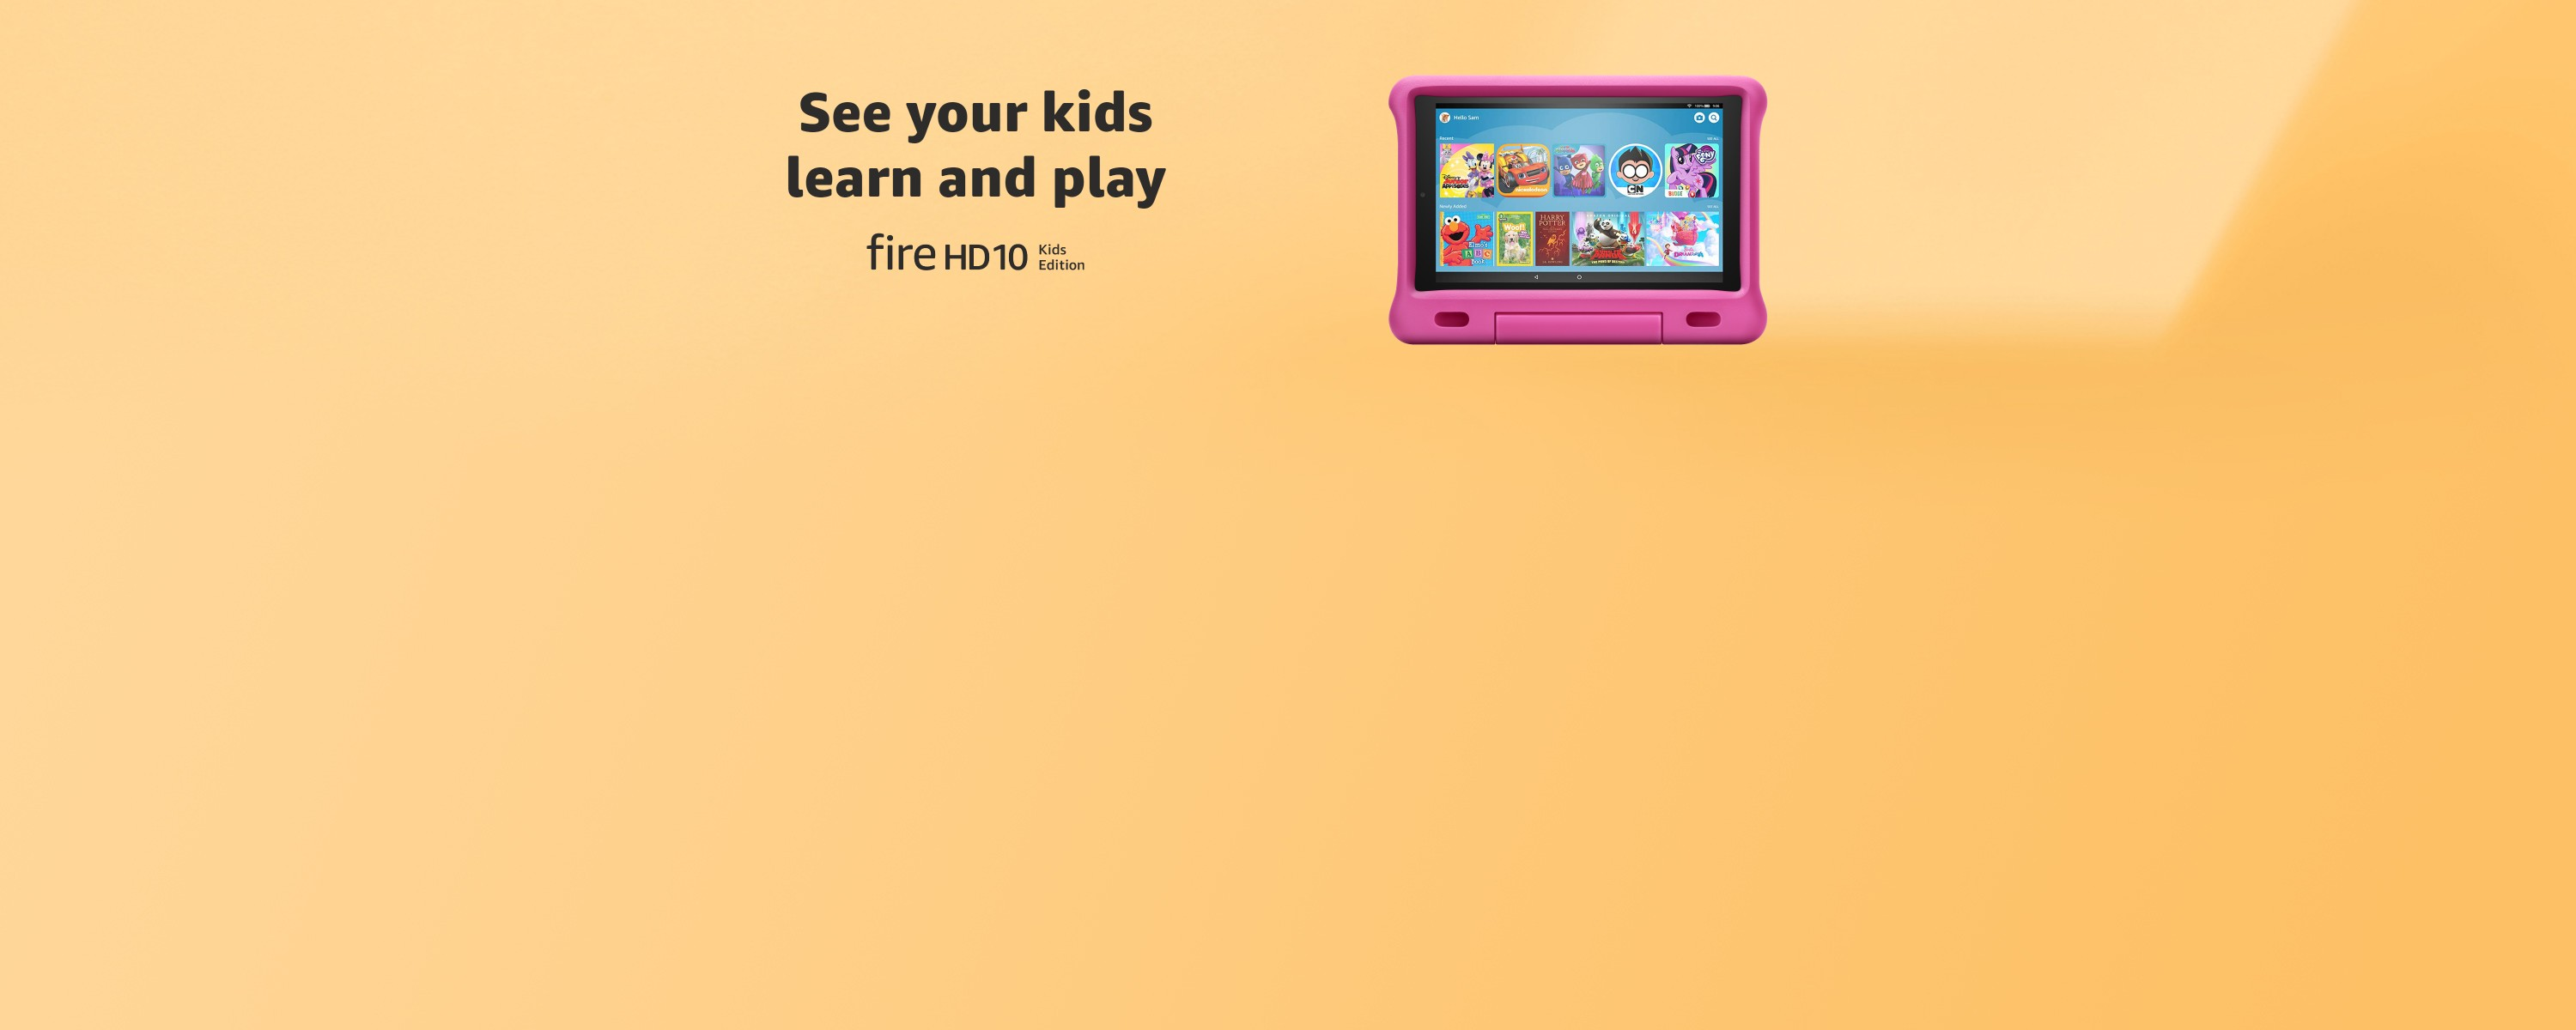 See your kids learn and play. Fire HD 10 Kids Edition.